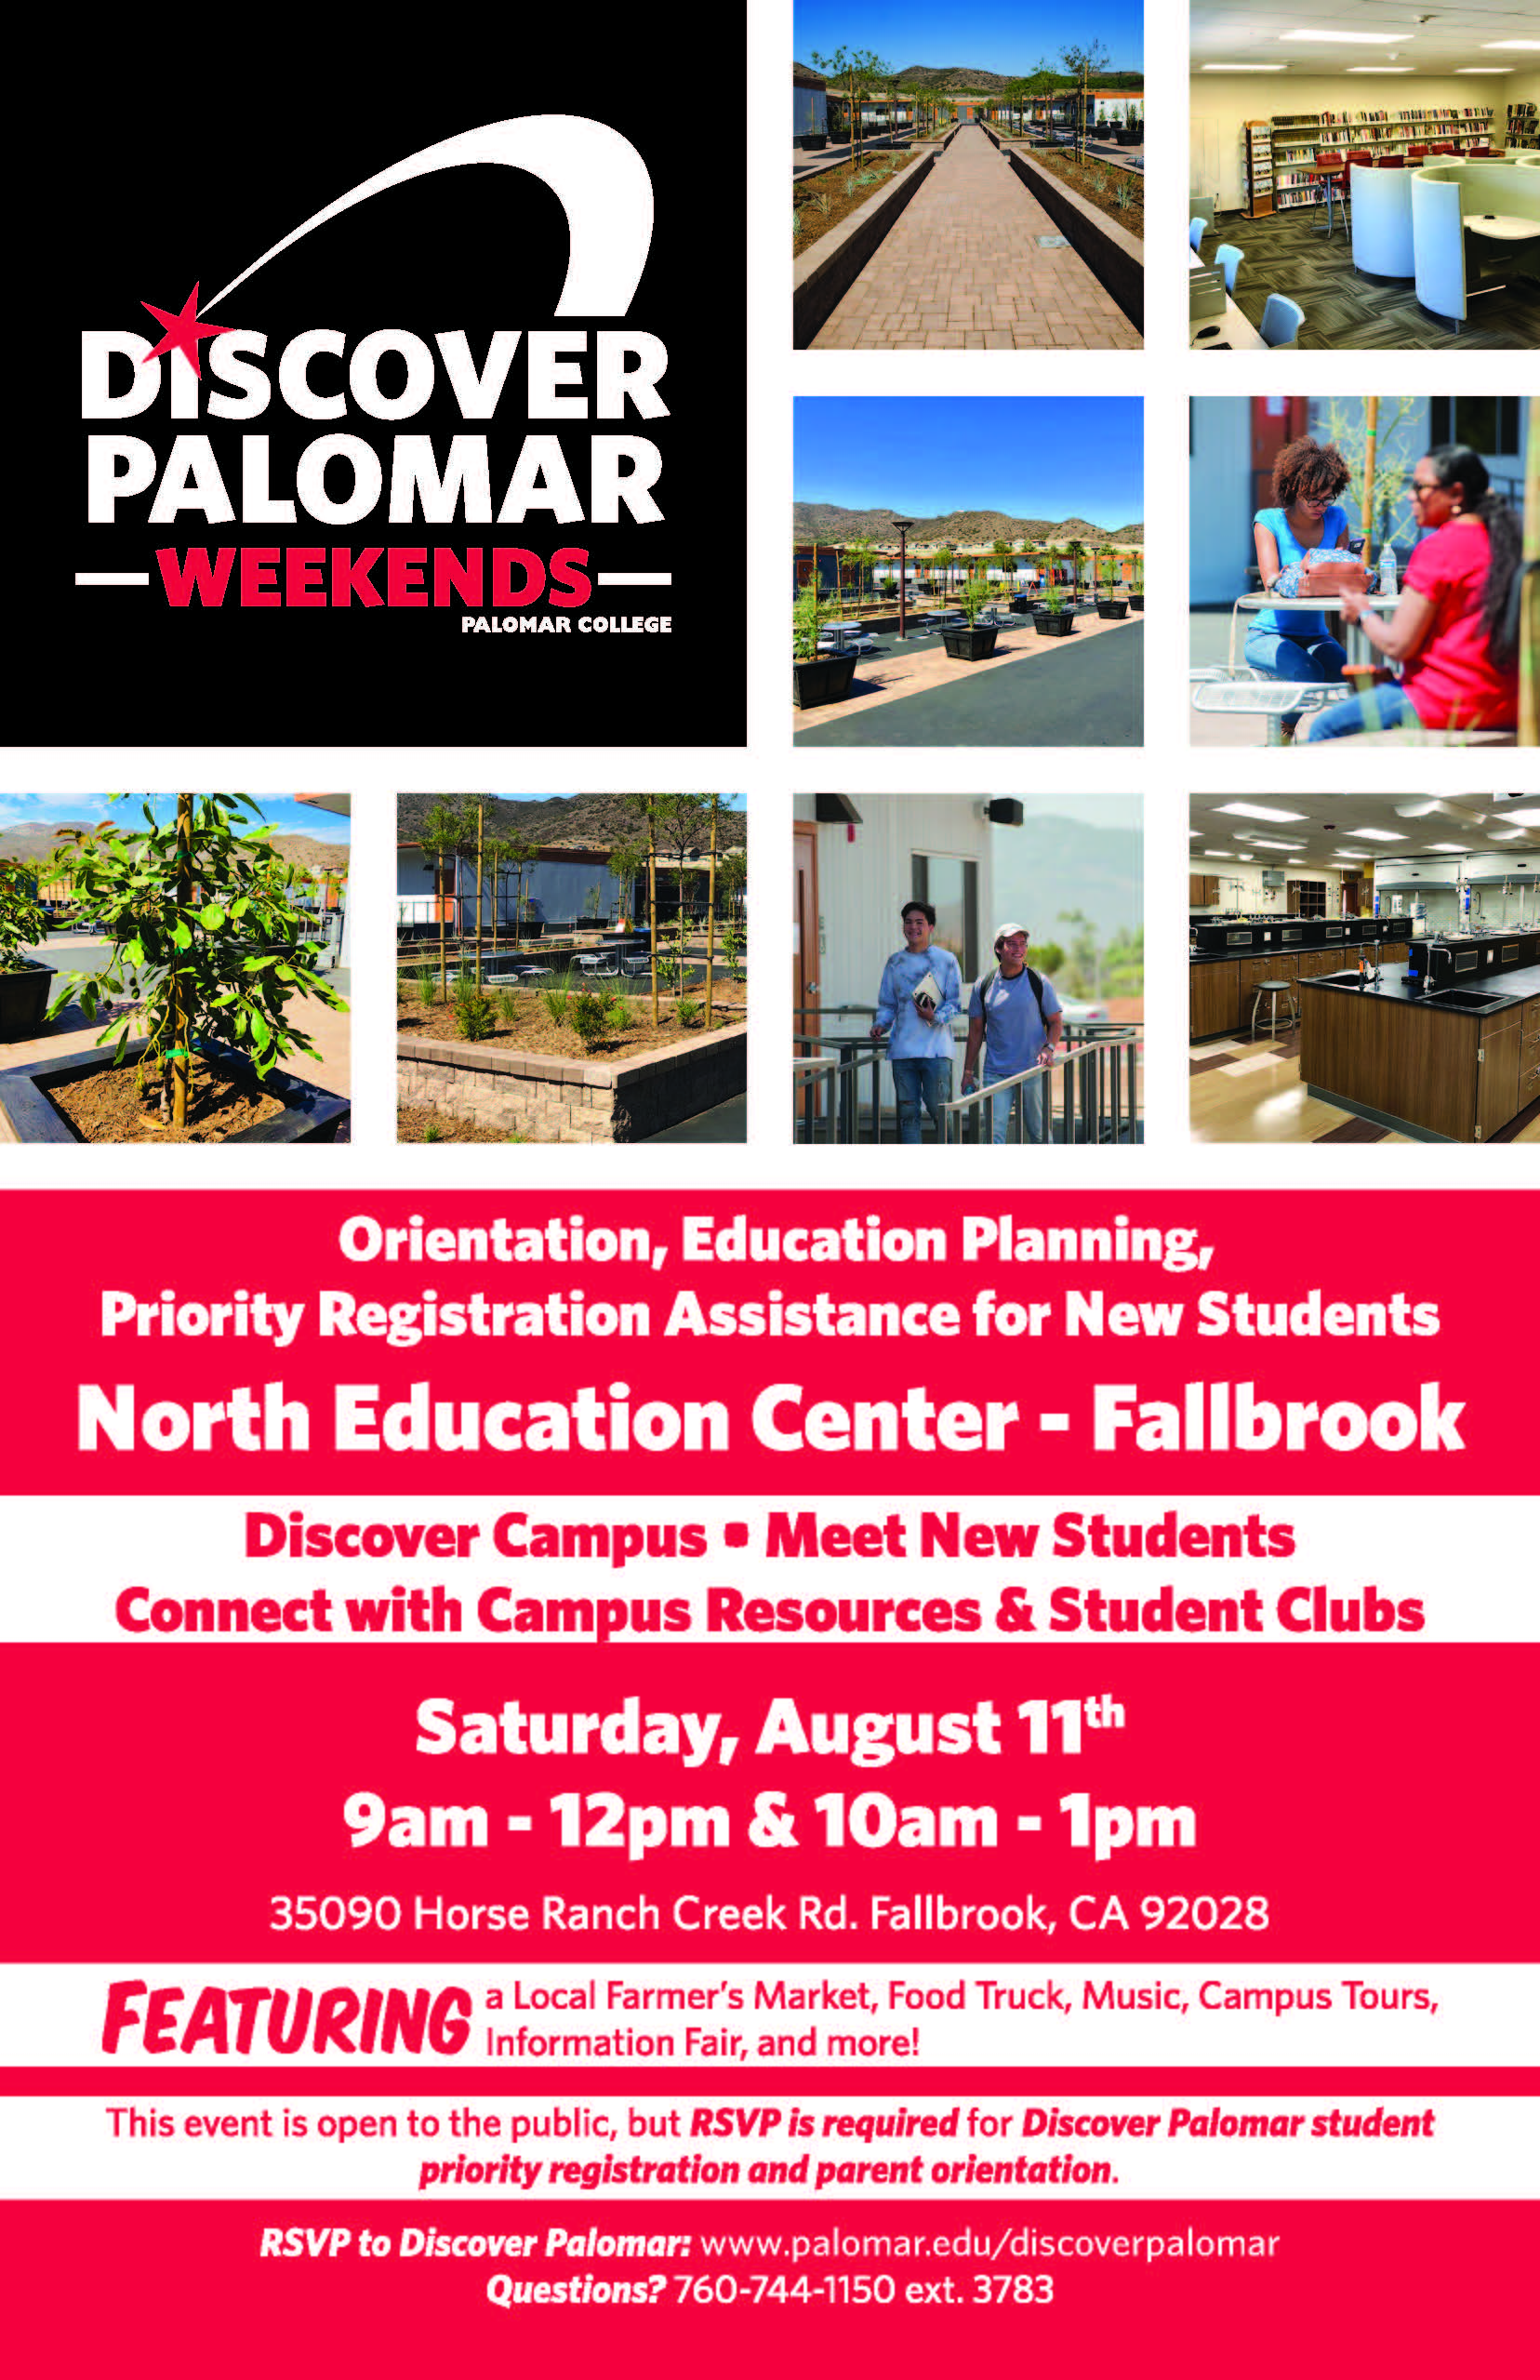 Discover Palomar Saturday, August 11 at the North Education Center, Fallbrook. 9am-12pm and 10am-1pm. Featuring a local farmer's market, food truck, music, campus tours, information fair, and more!